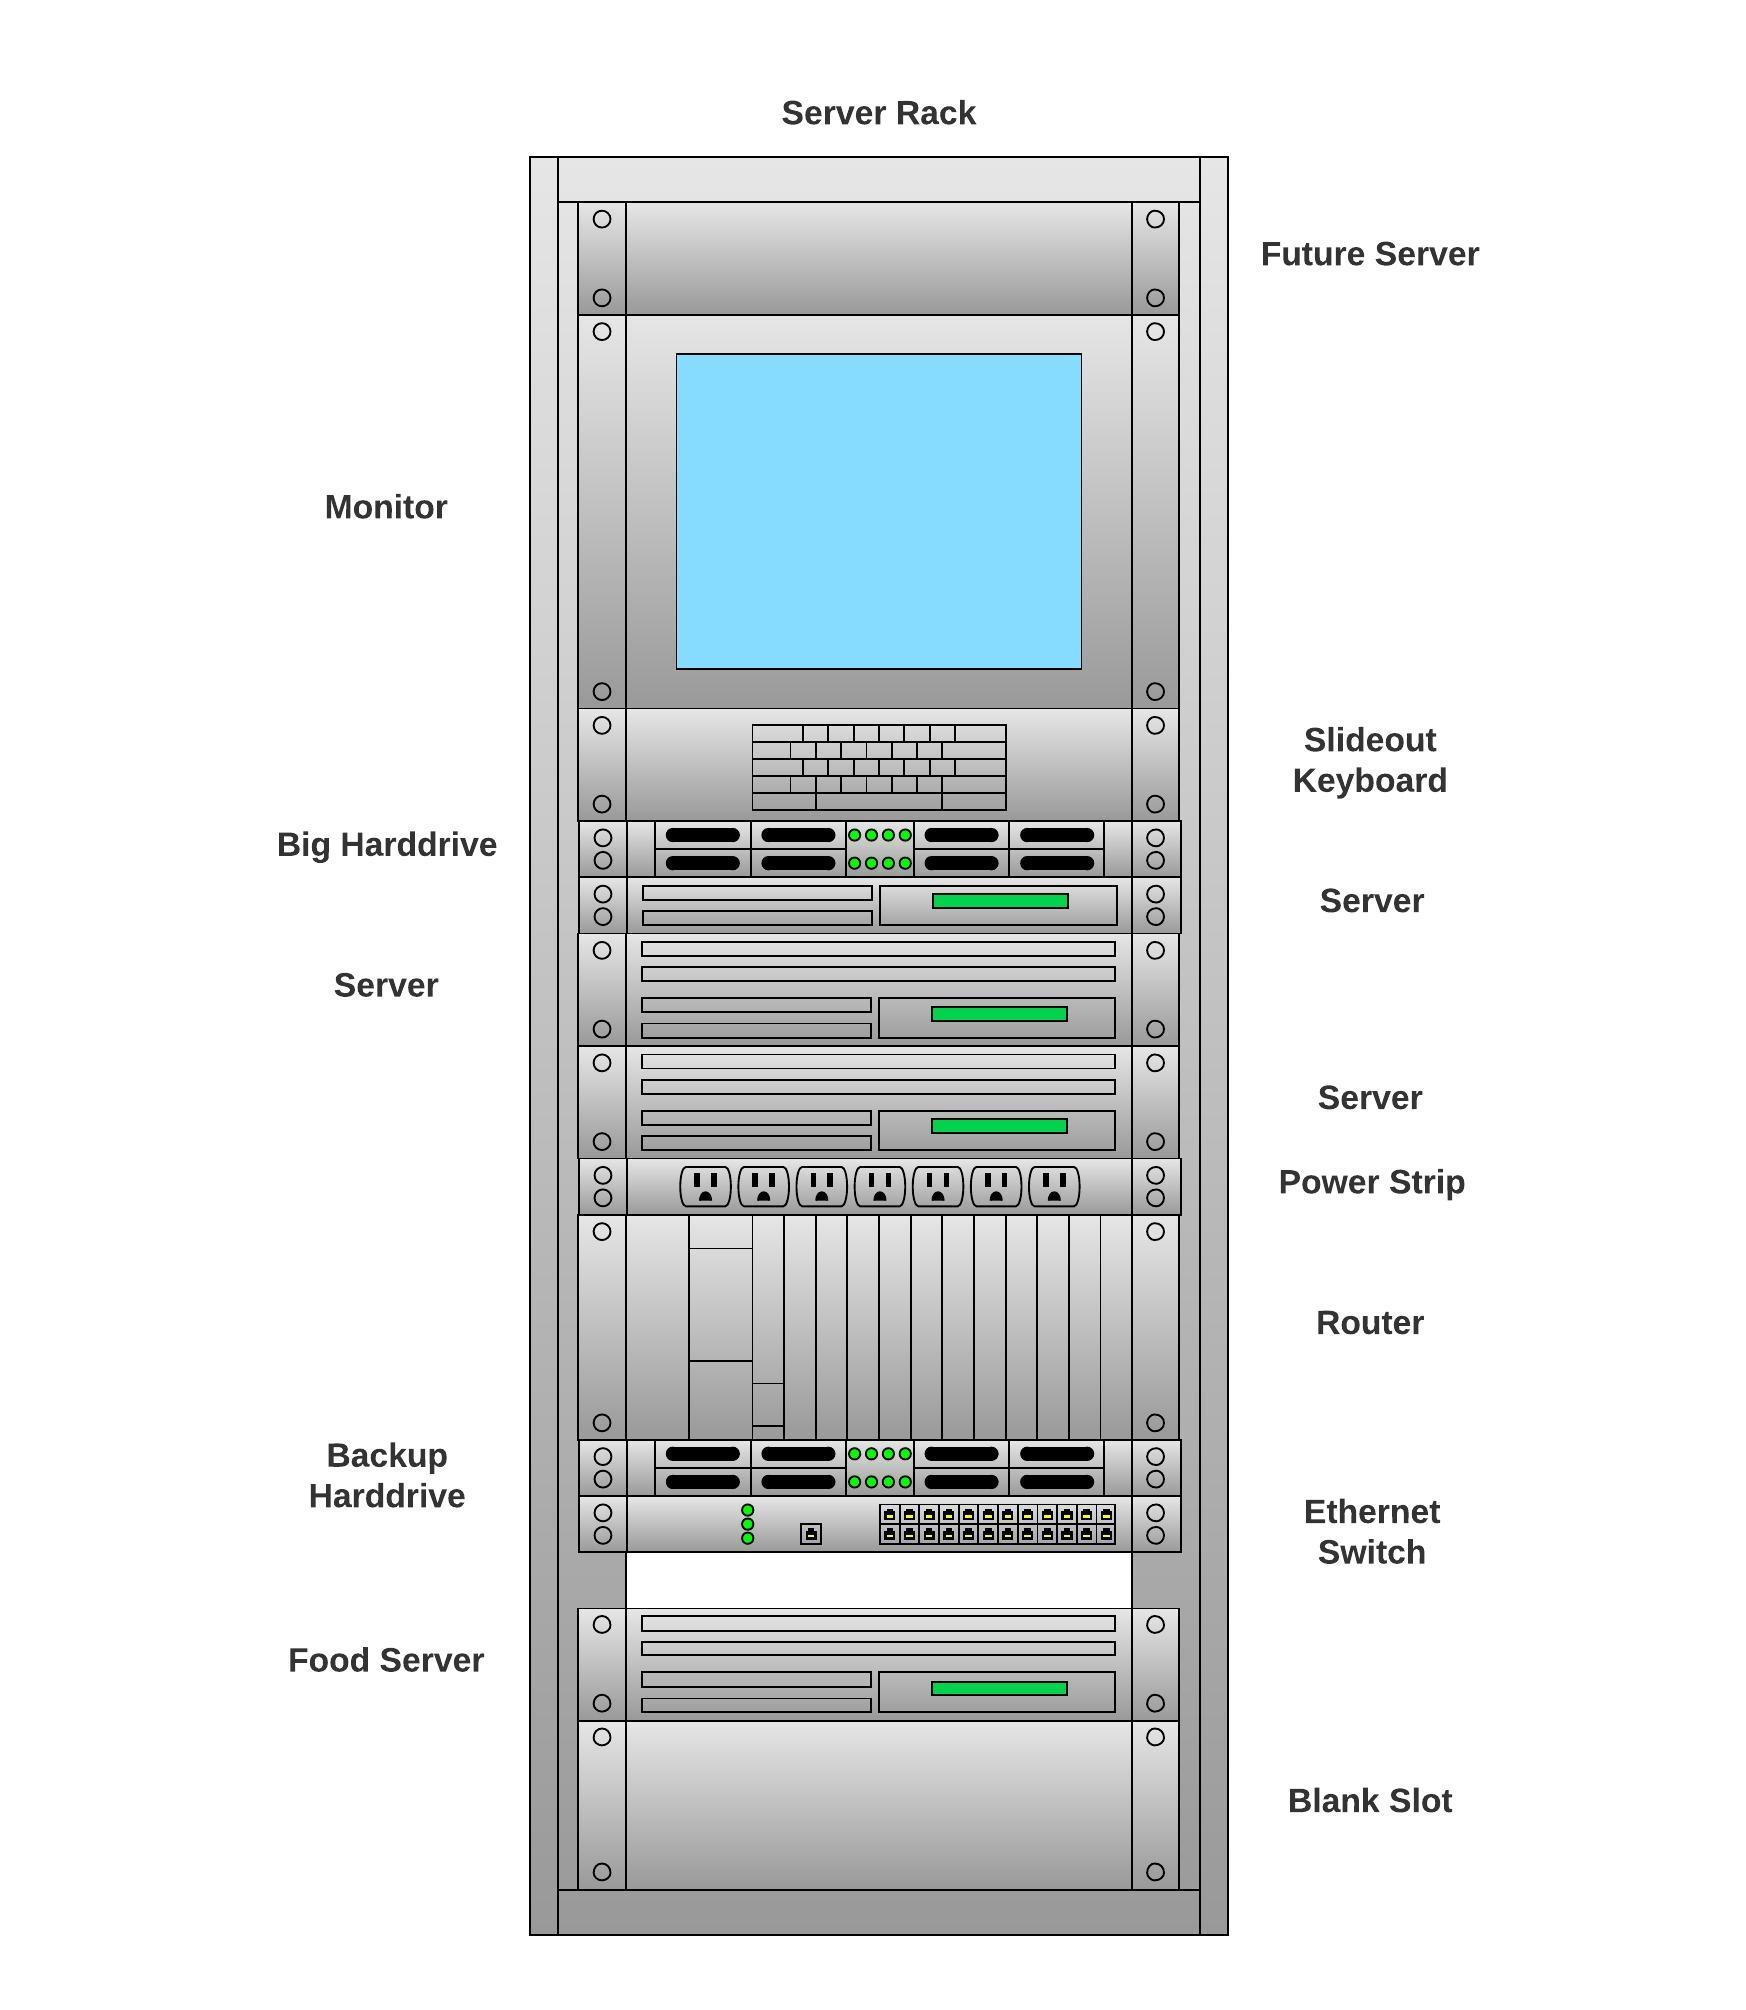 Modello di diagramma per rack di server